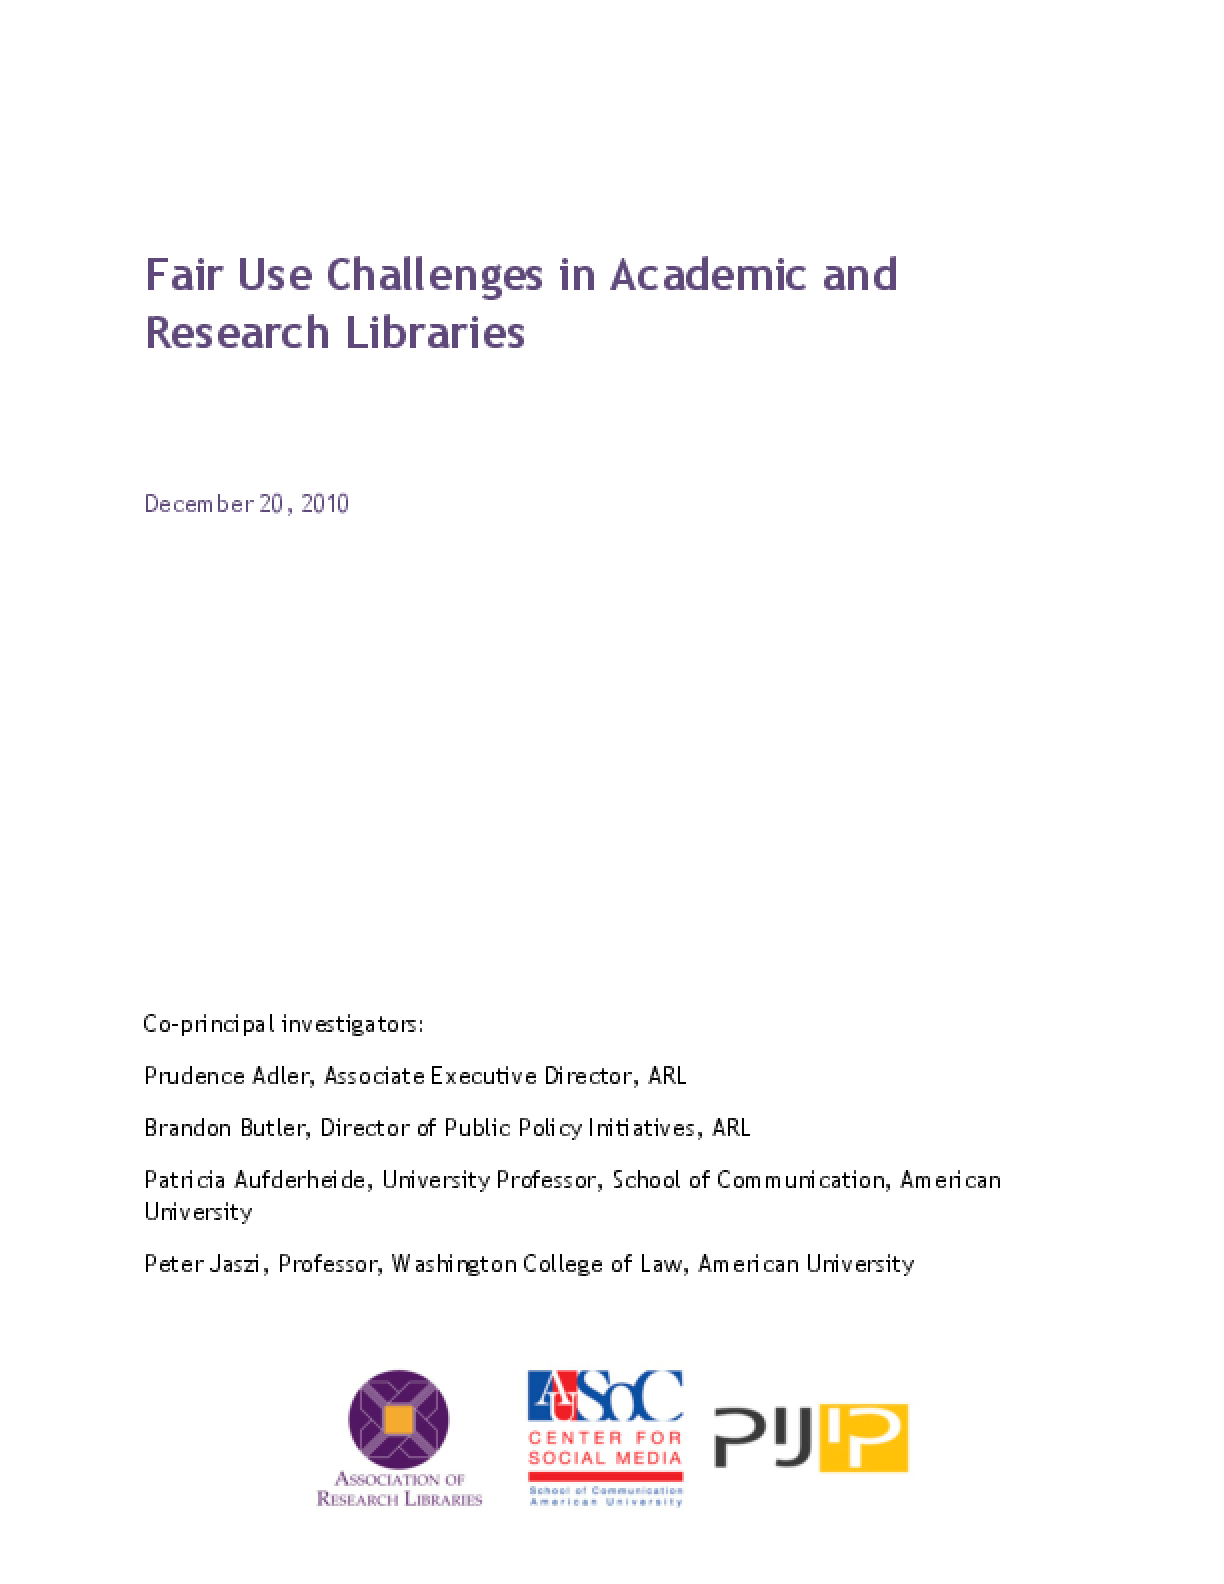 Fair Use Challenges in Academic and Research Libraries